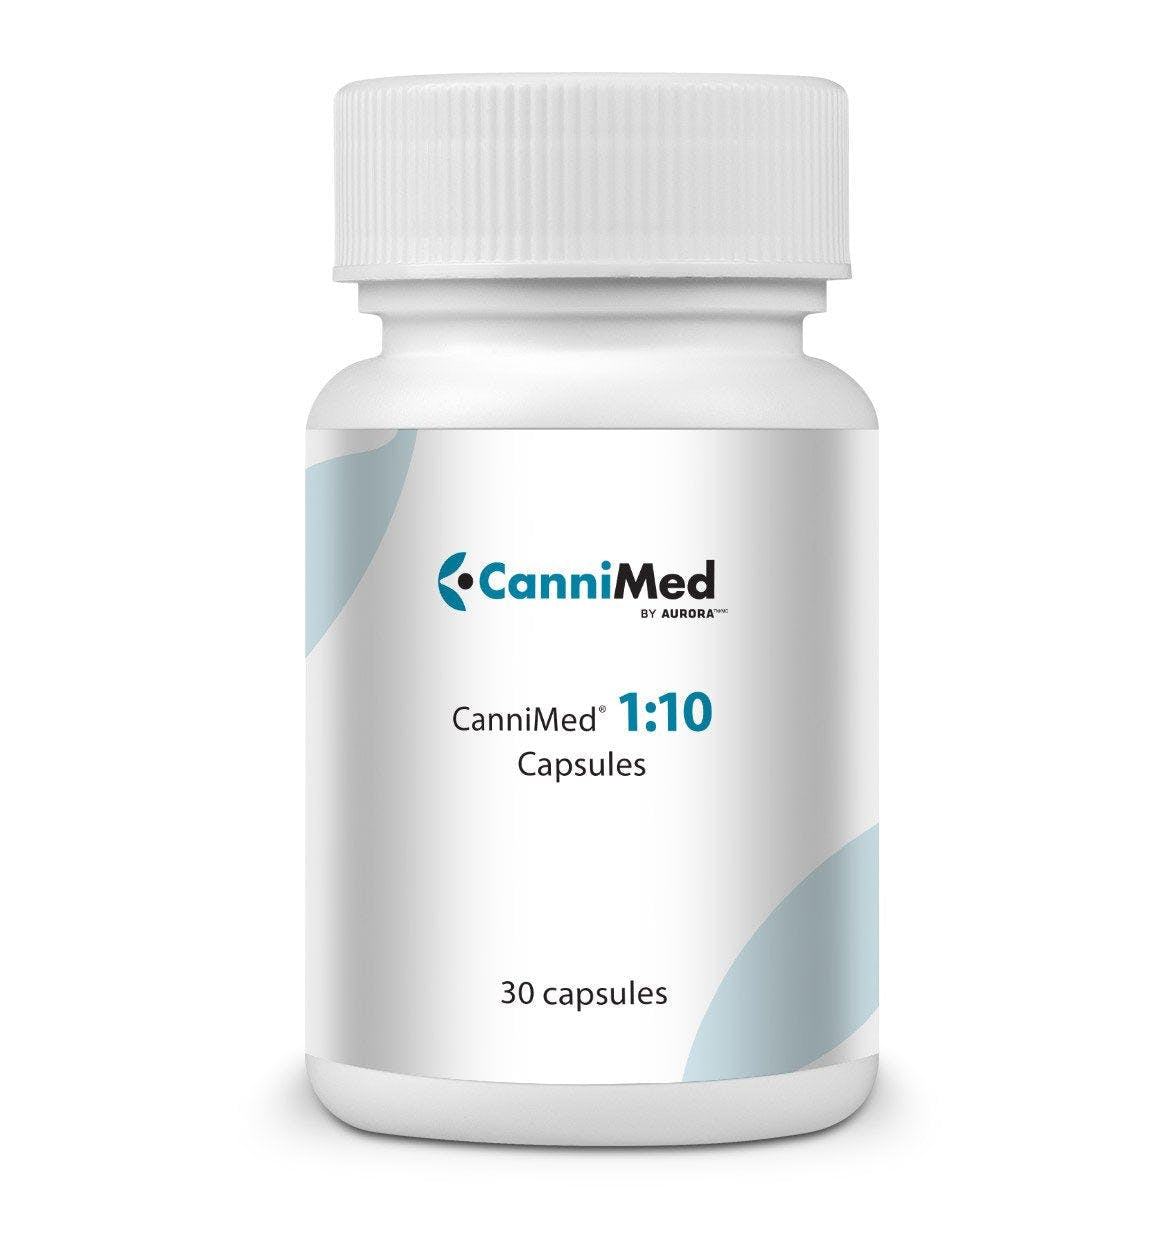 CanniMed Capsules 1:10